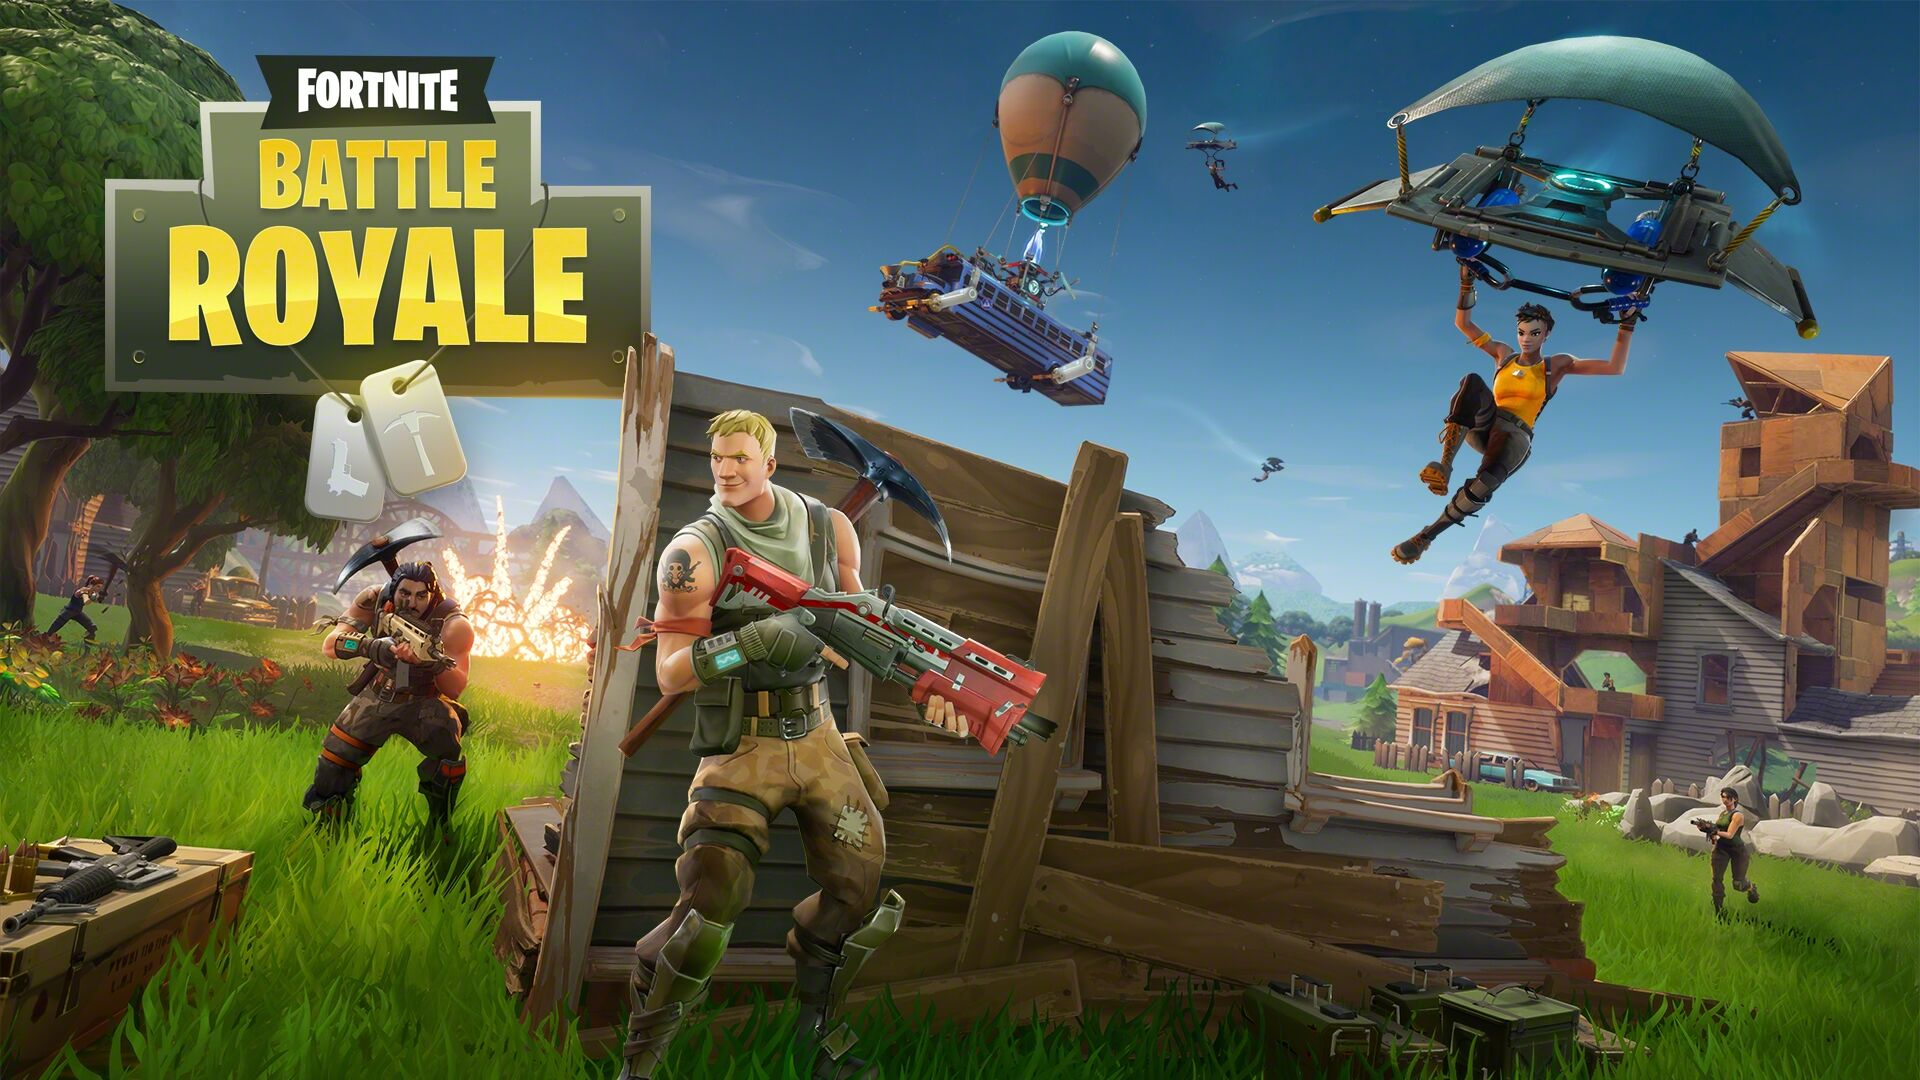 Fortnite Battle Royale Several New Skins Gliders And Pickaxes Leaked